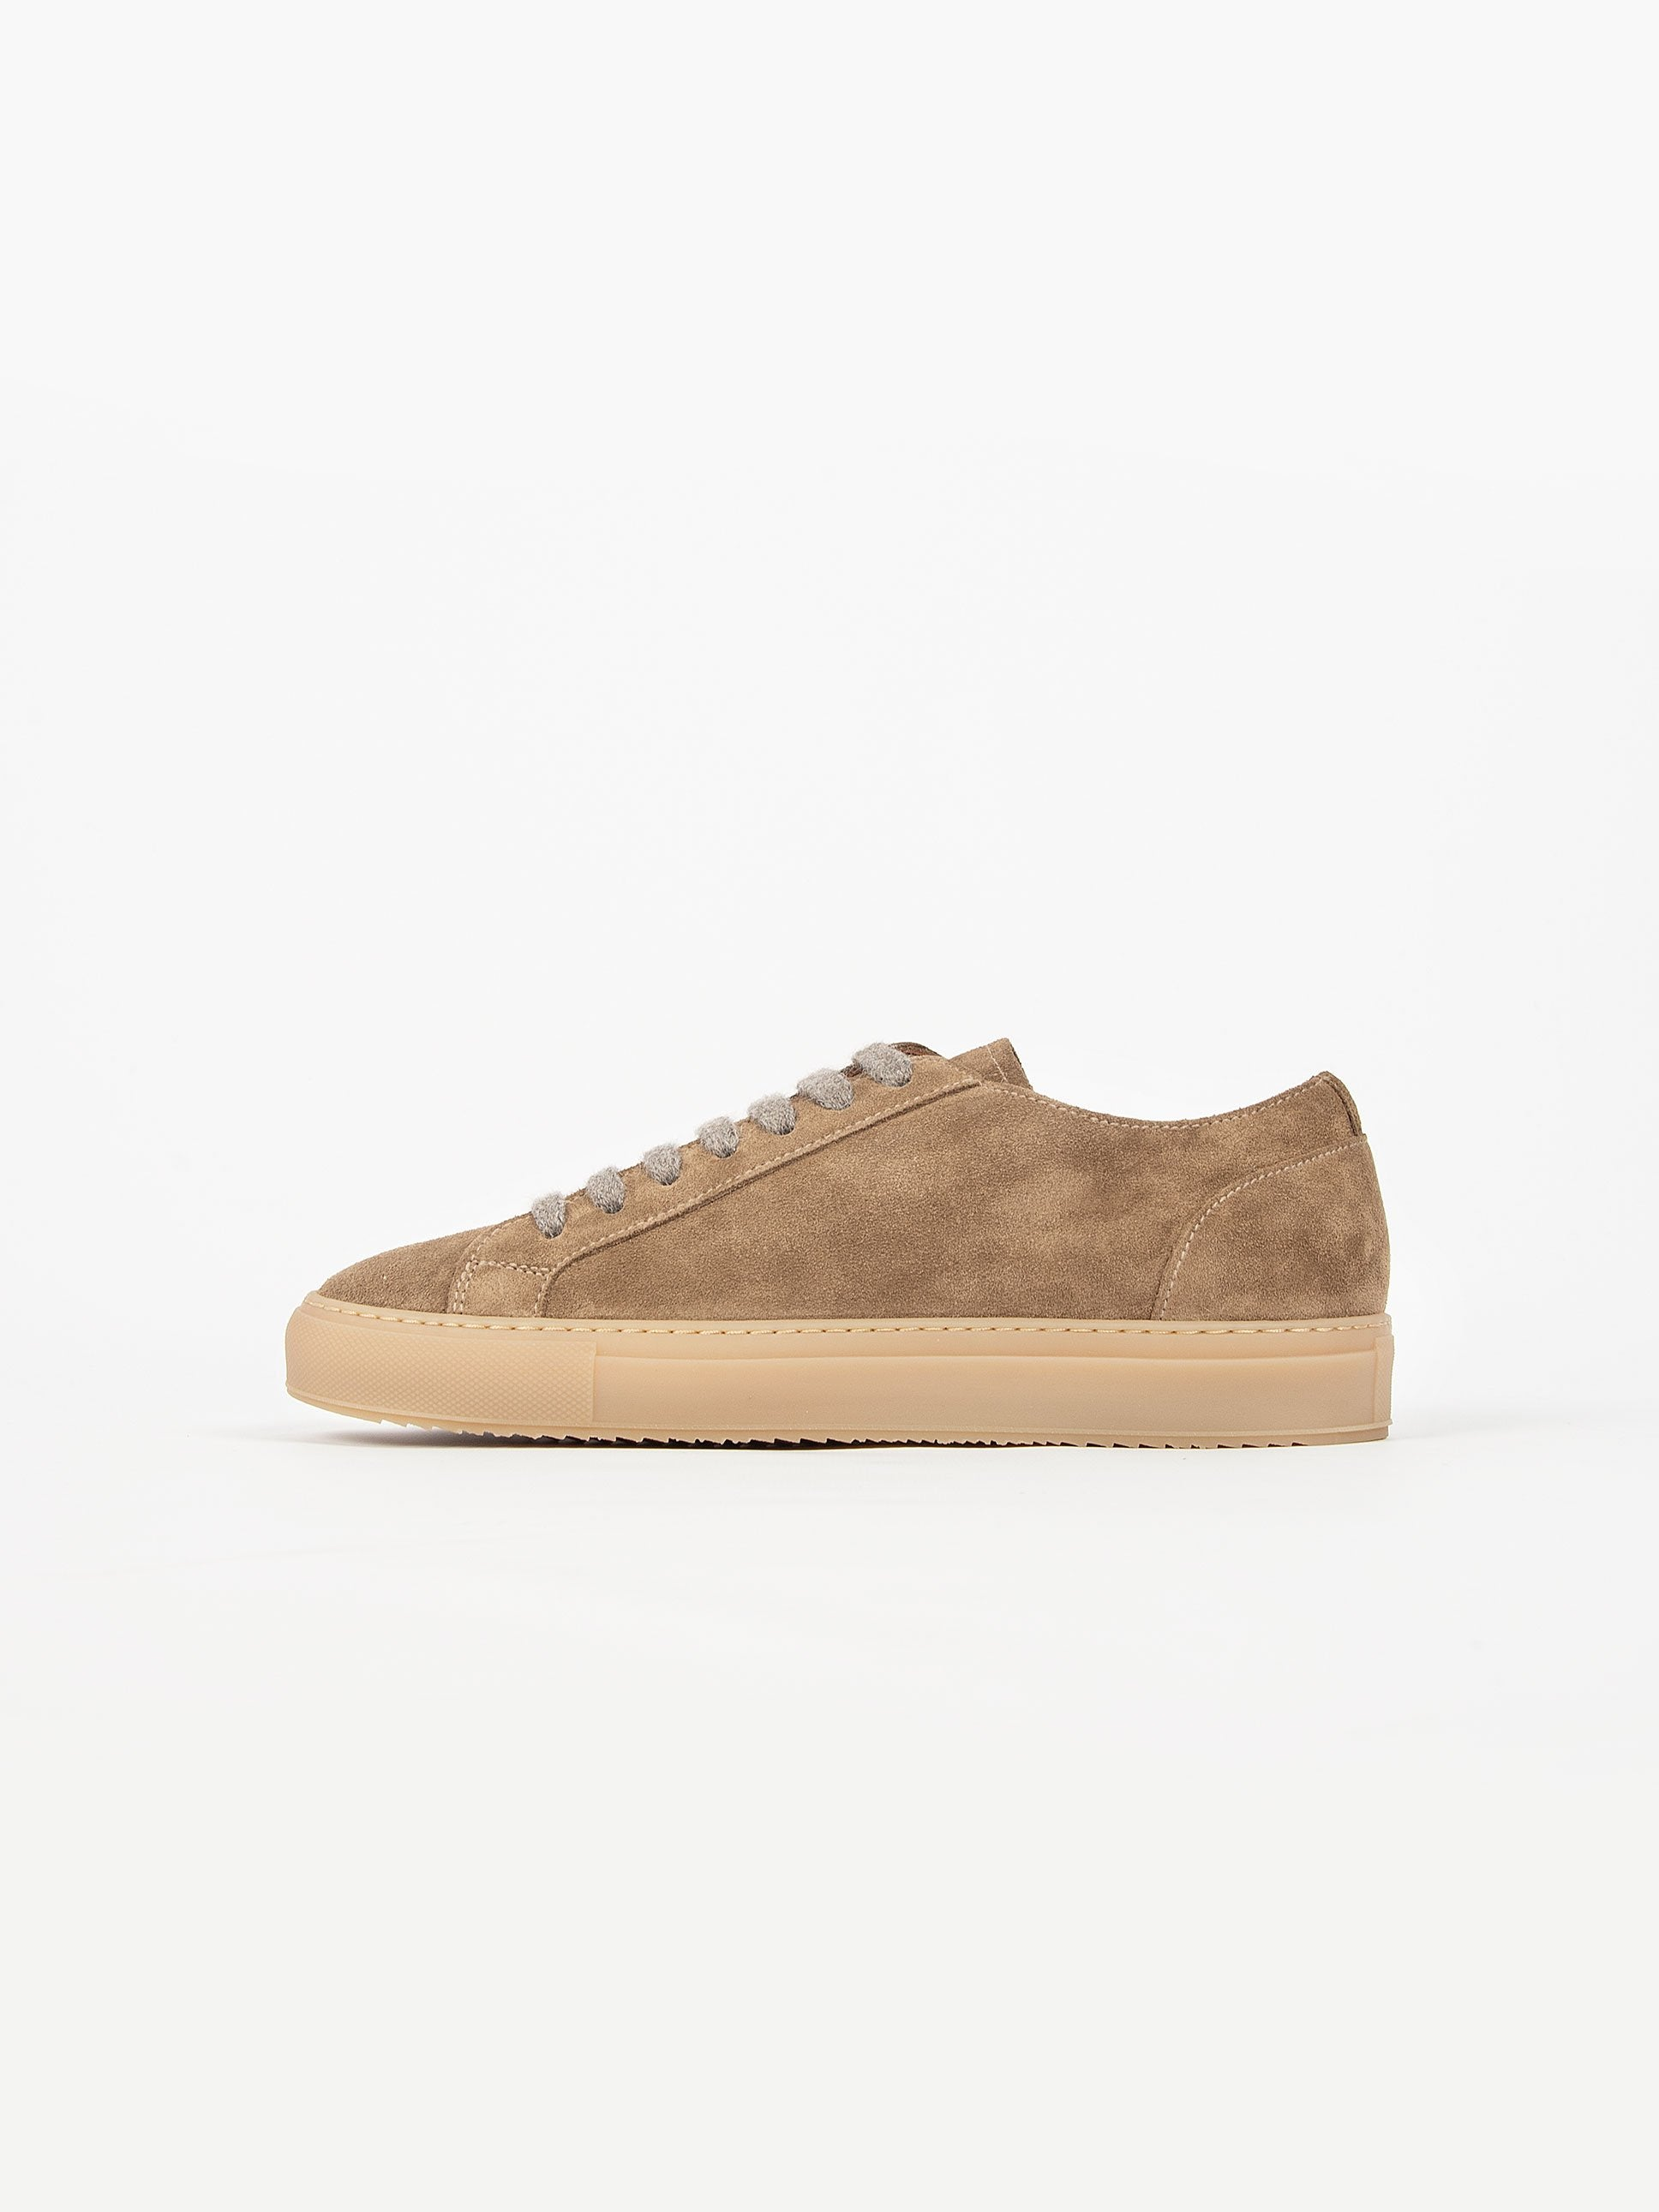 Sneaker Suede - Tabacco